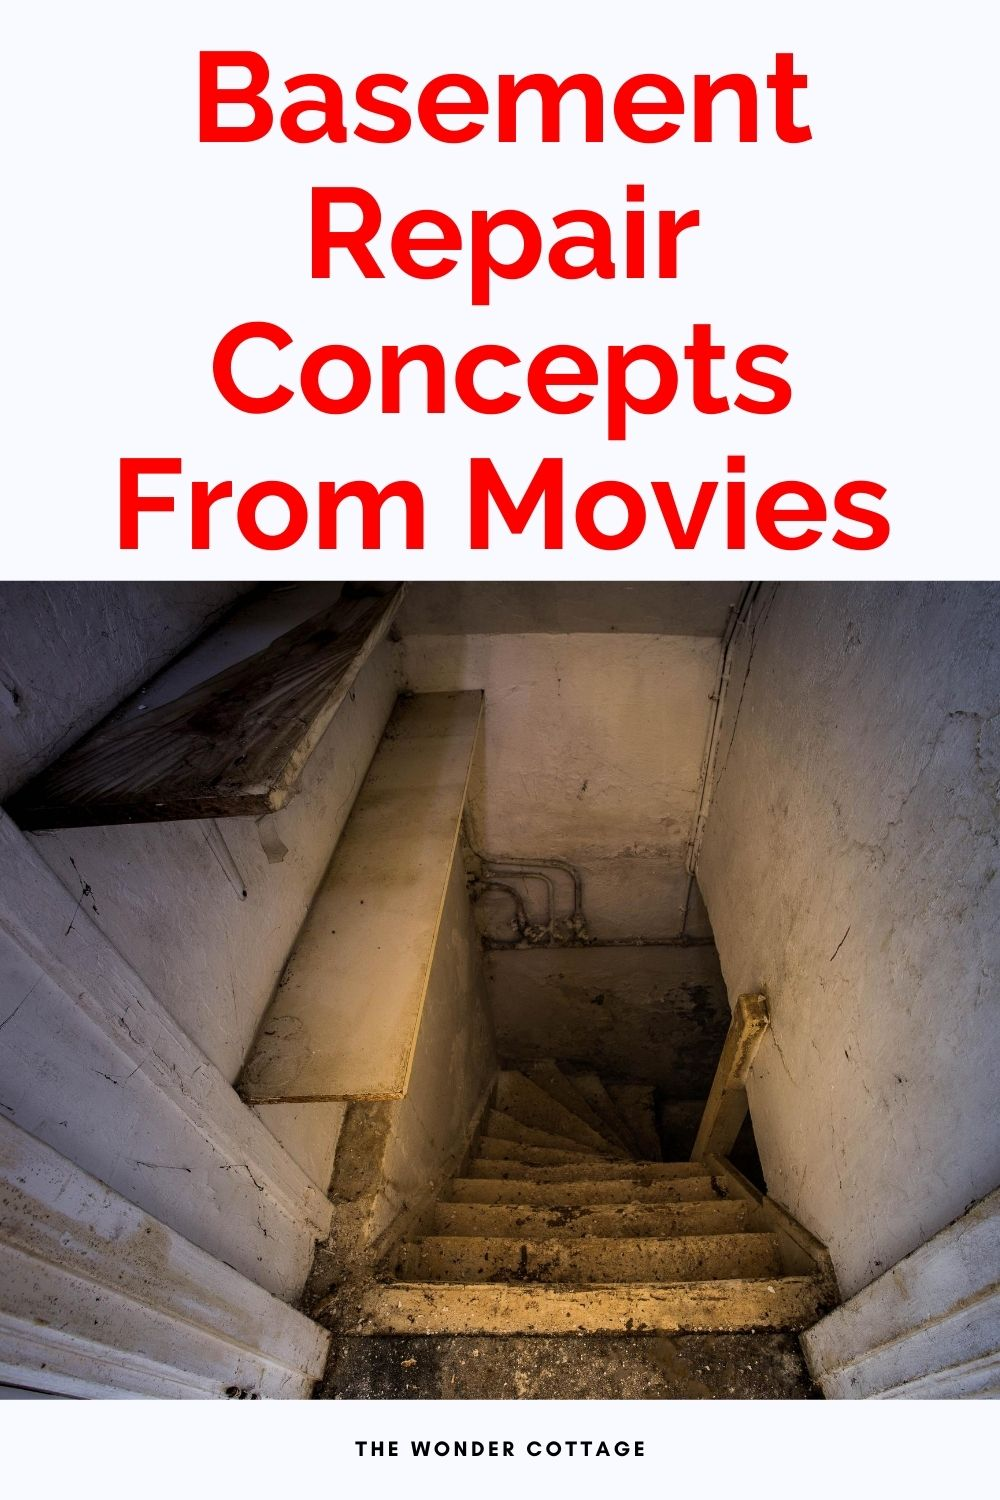 Basement repair concepts from movies